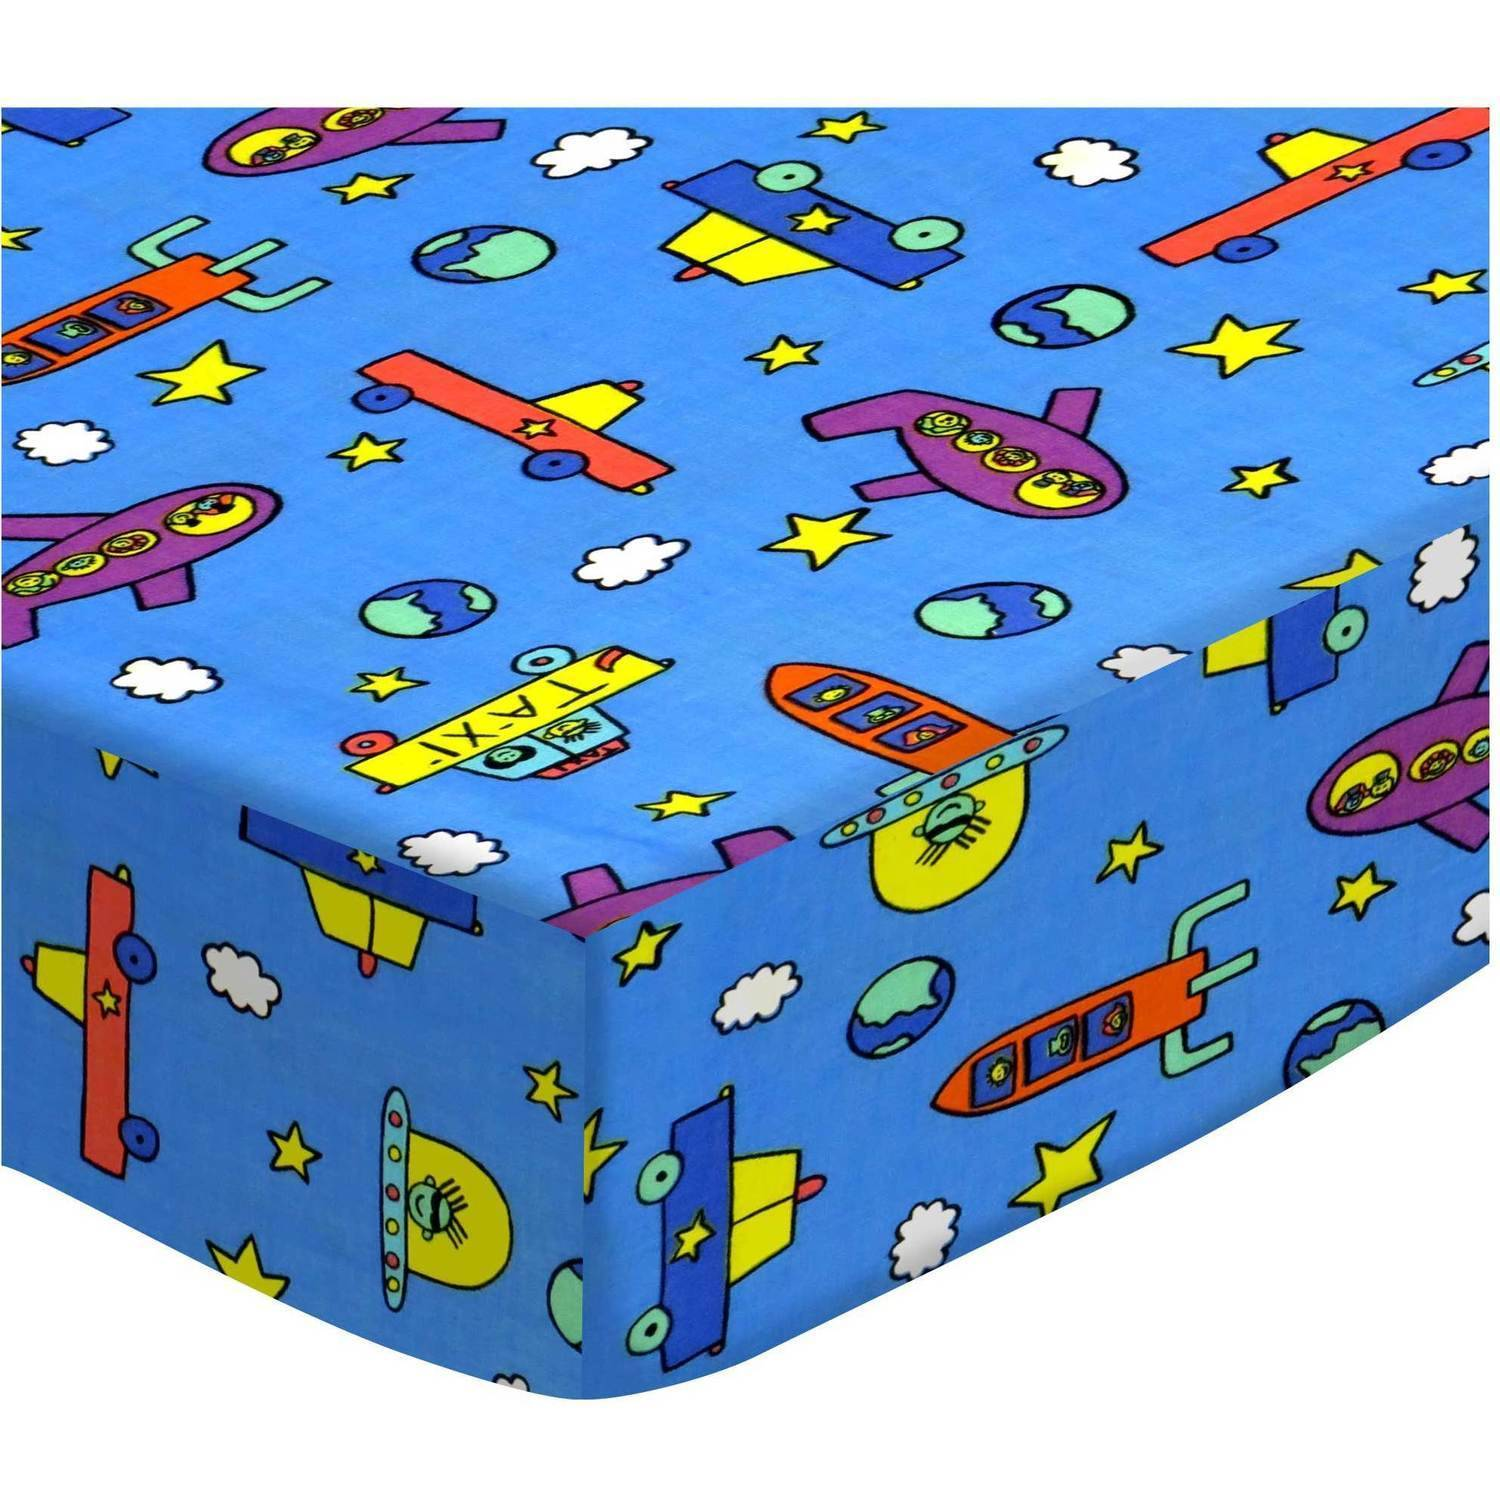 SheetWorld Fitted Pack N Play (Graco Square Playard) Sheet - Kiddie Transport